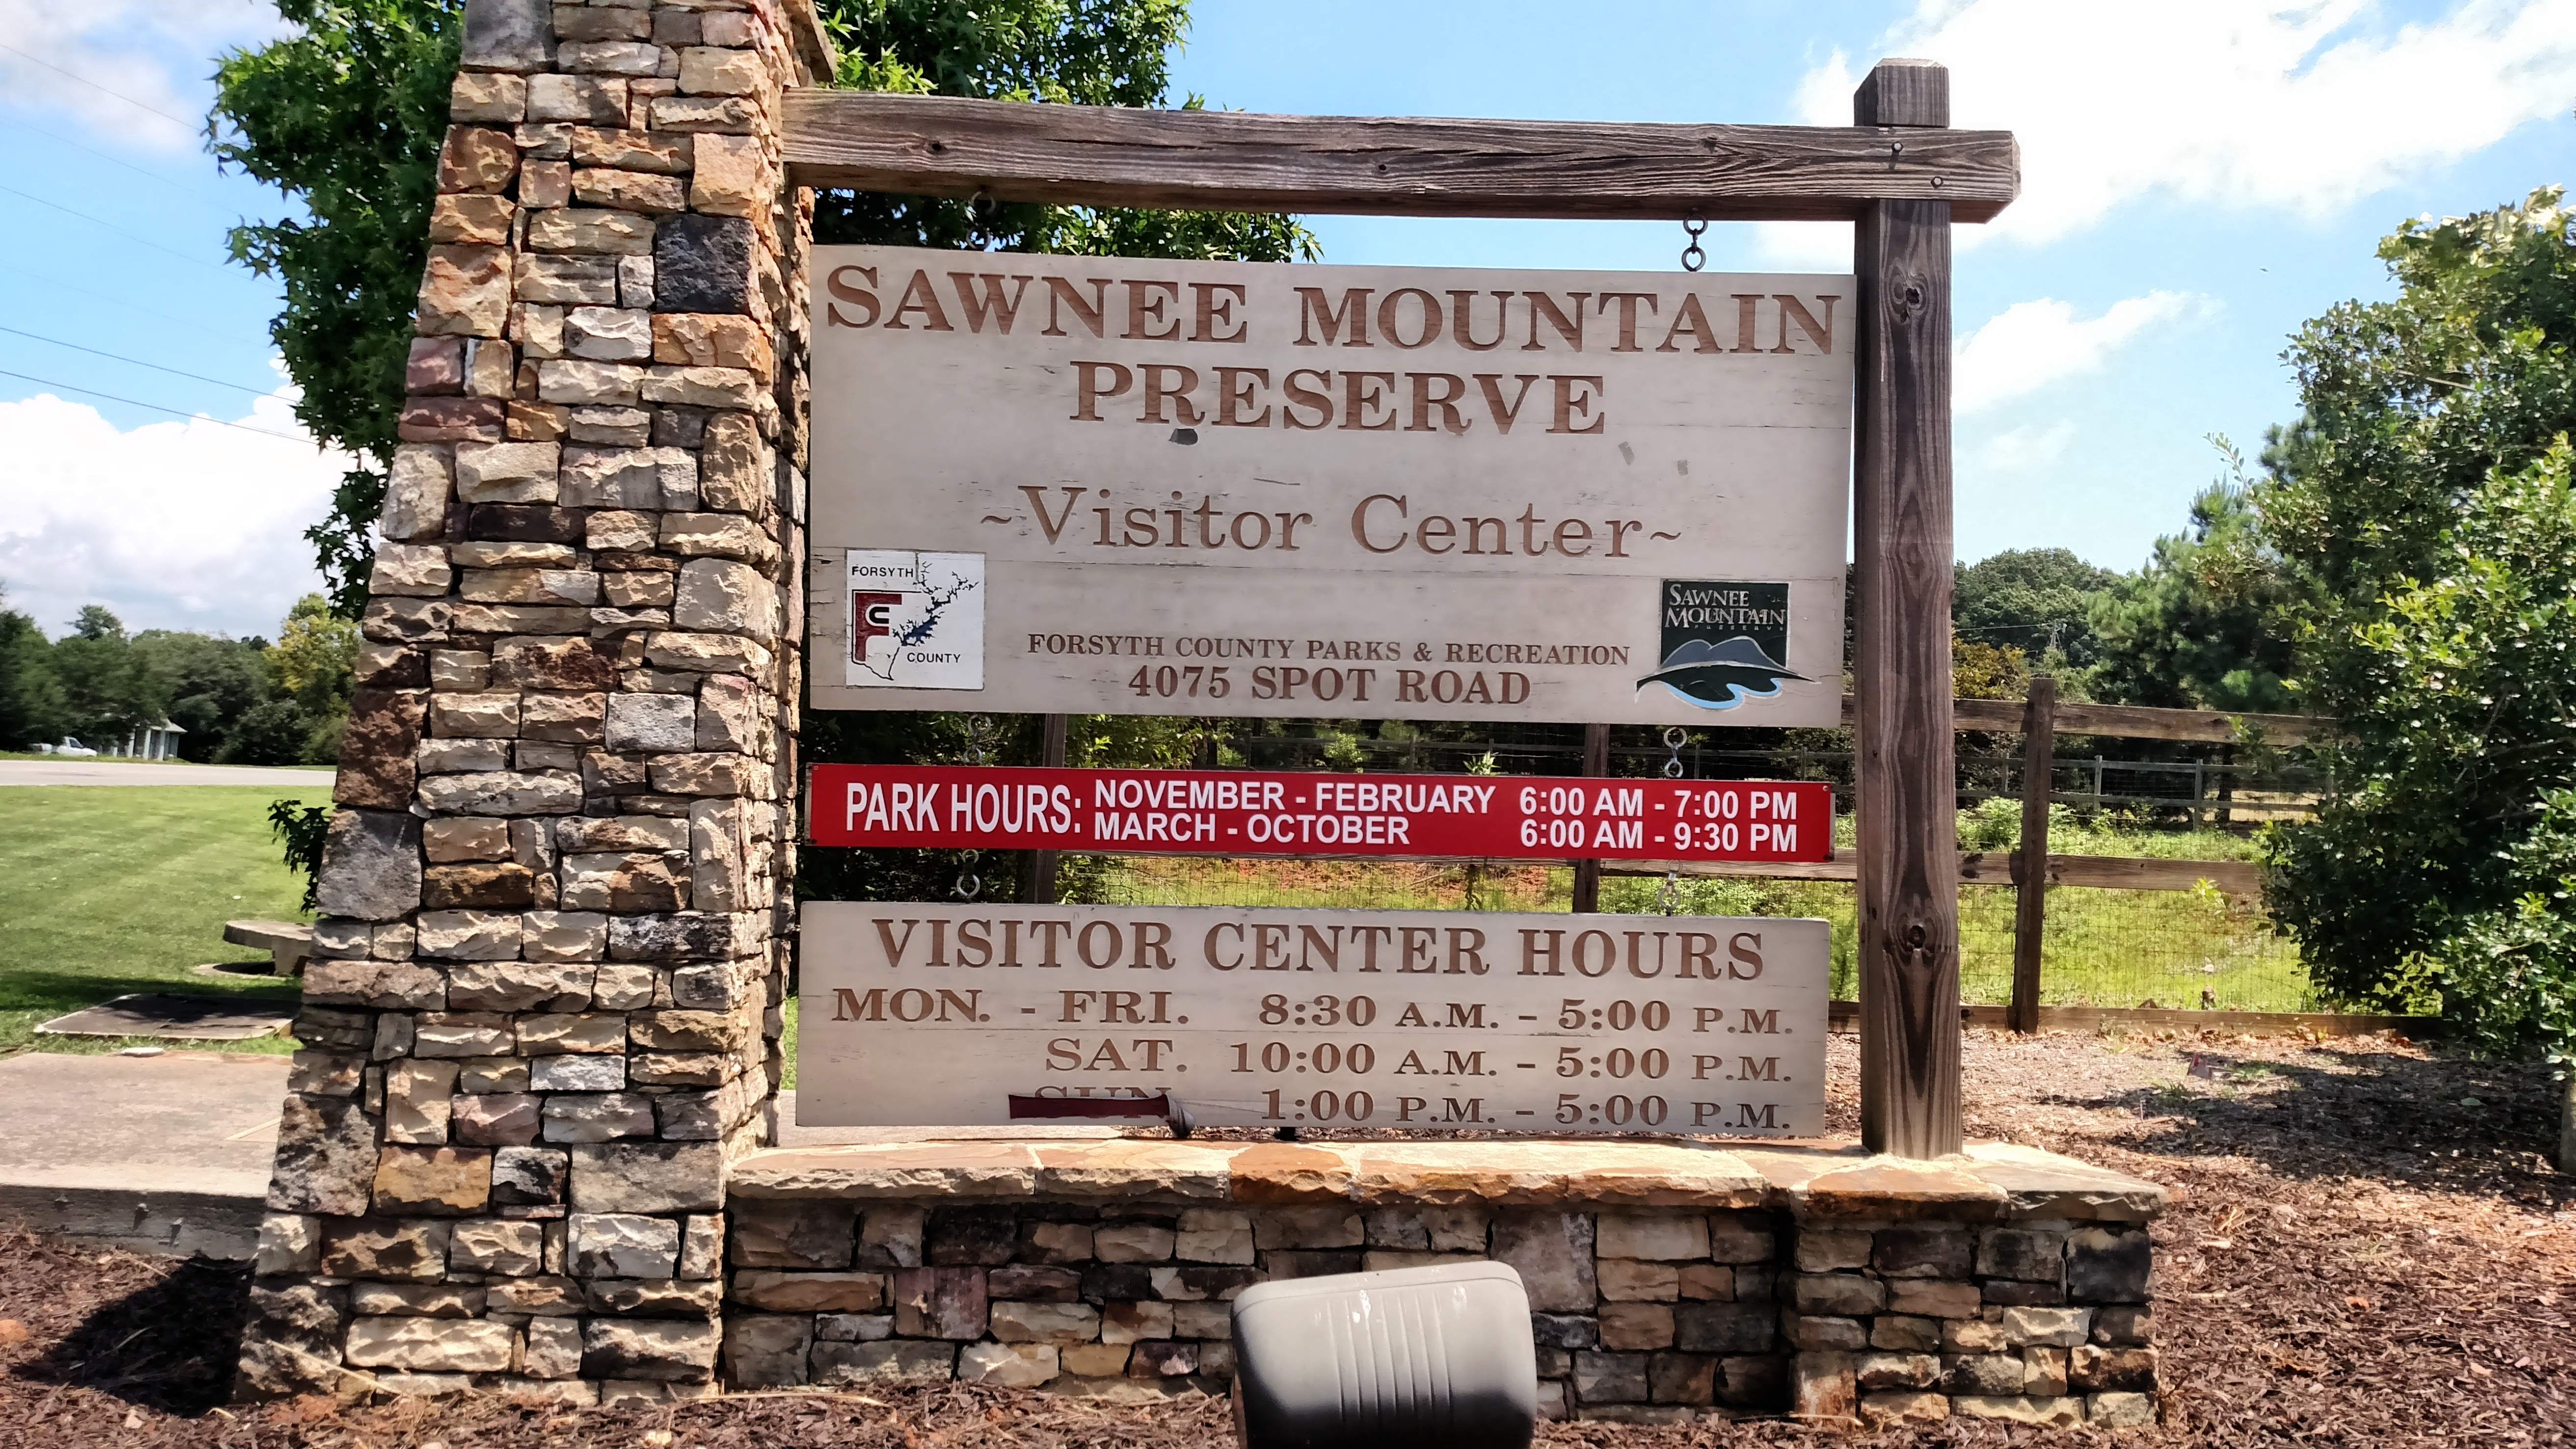 Sawnee Mountain Preserve on Spot Road, the ultimate destination of the Big Creek Greenway!